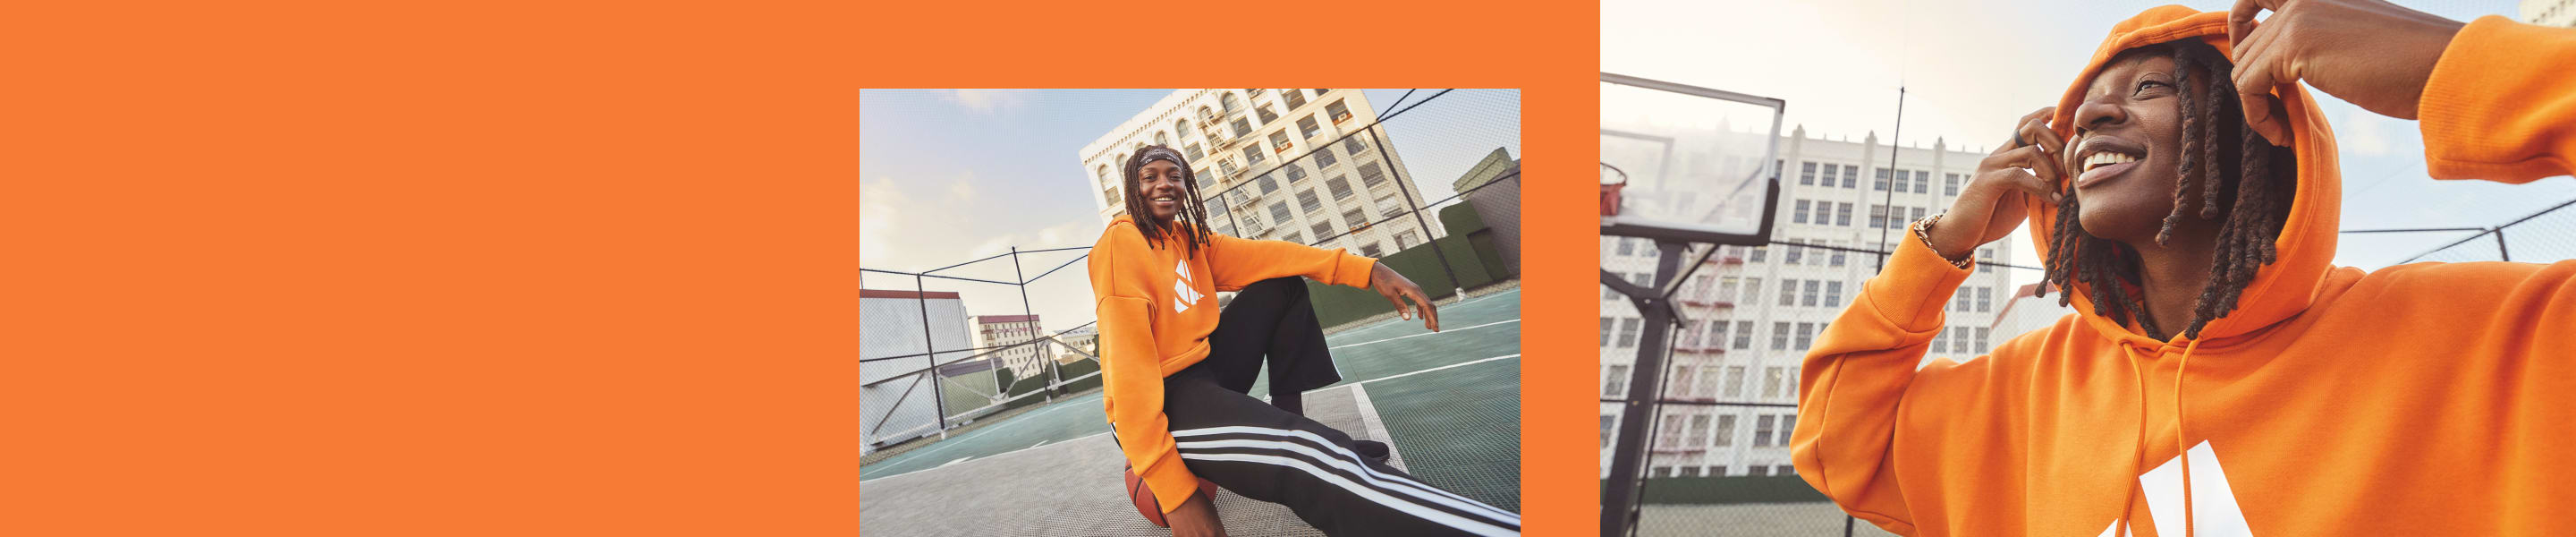 A woman sits on a basketball court, her back to the camera. She wears a orange adidas hoody and black adidas bottoms.